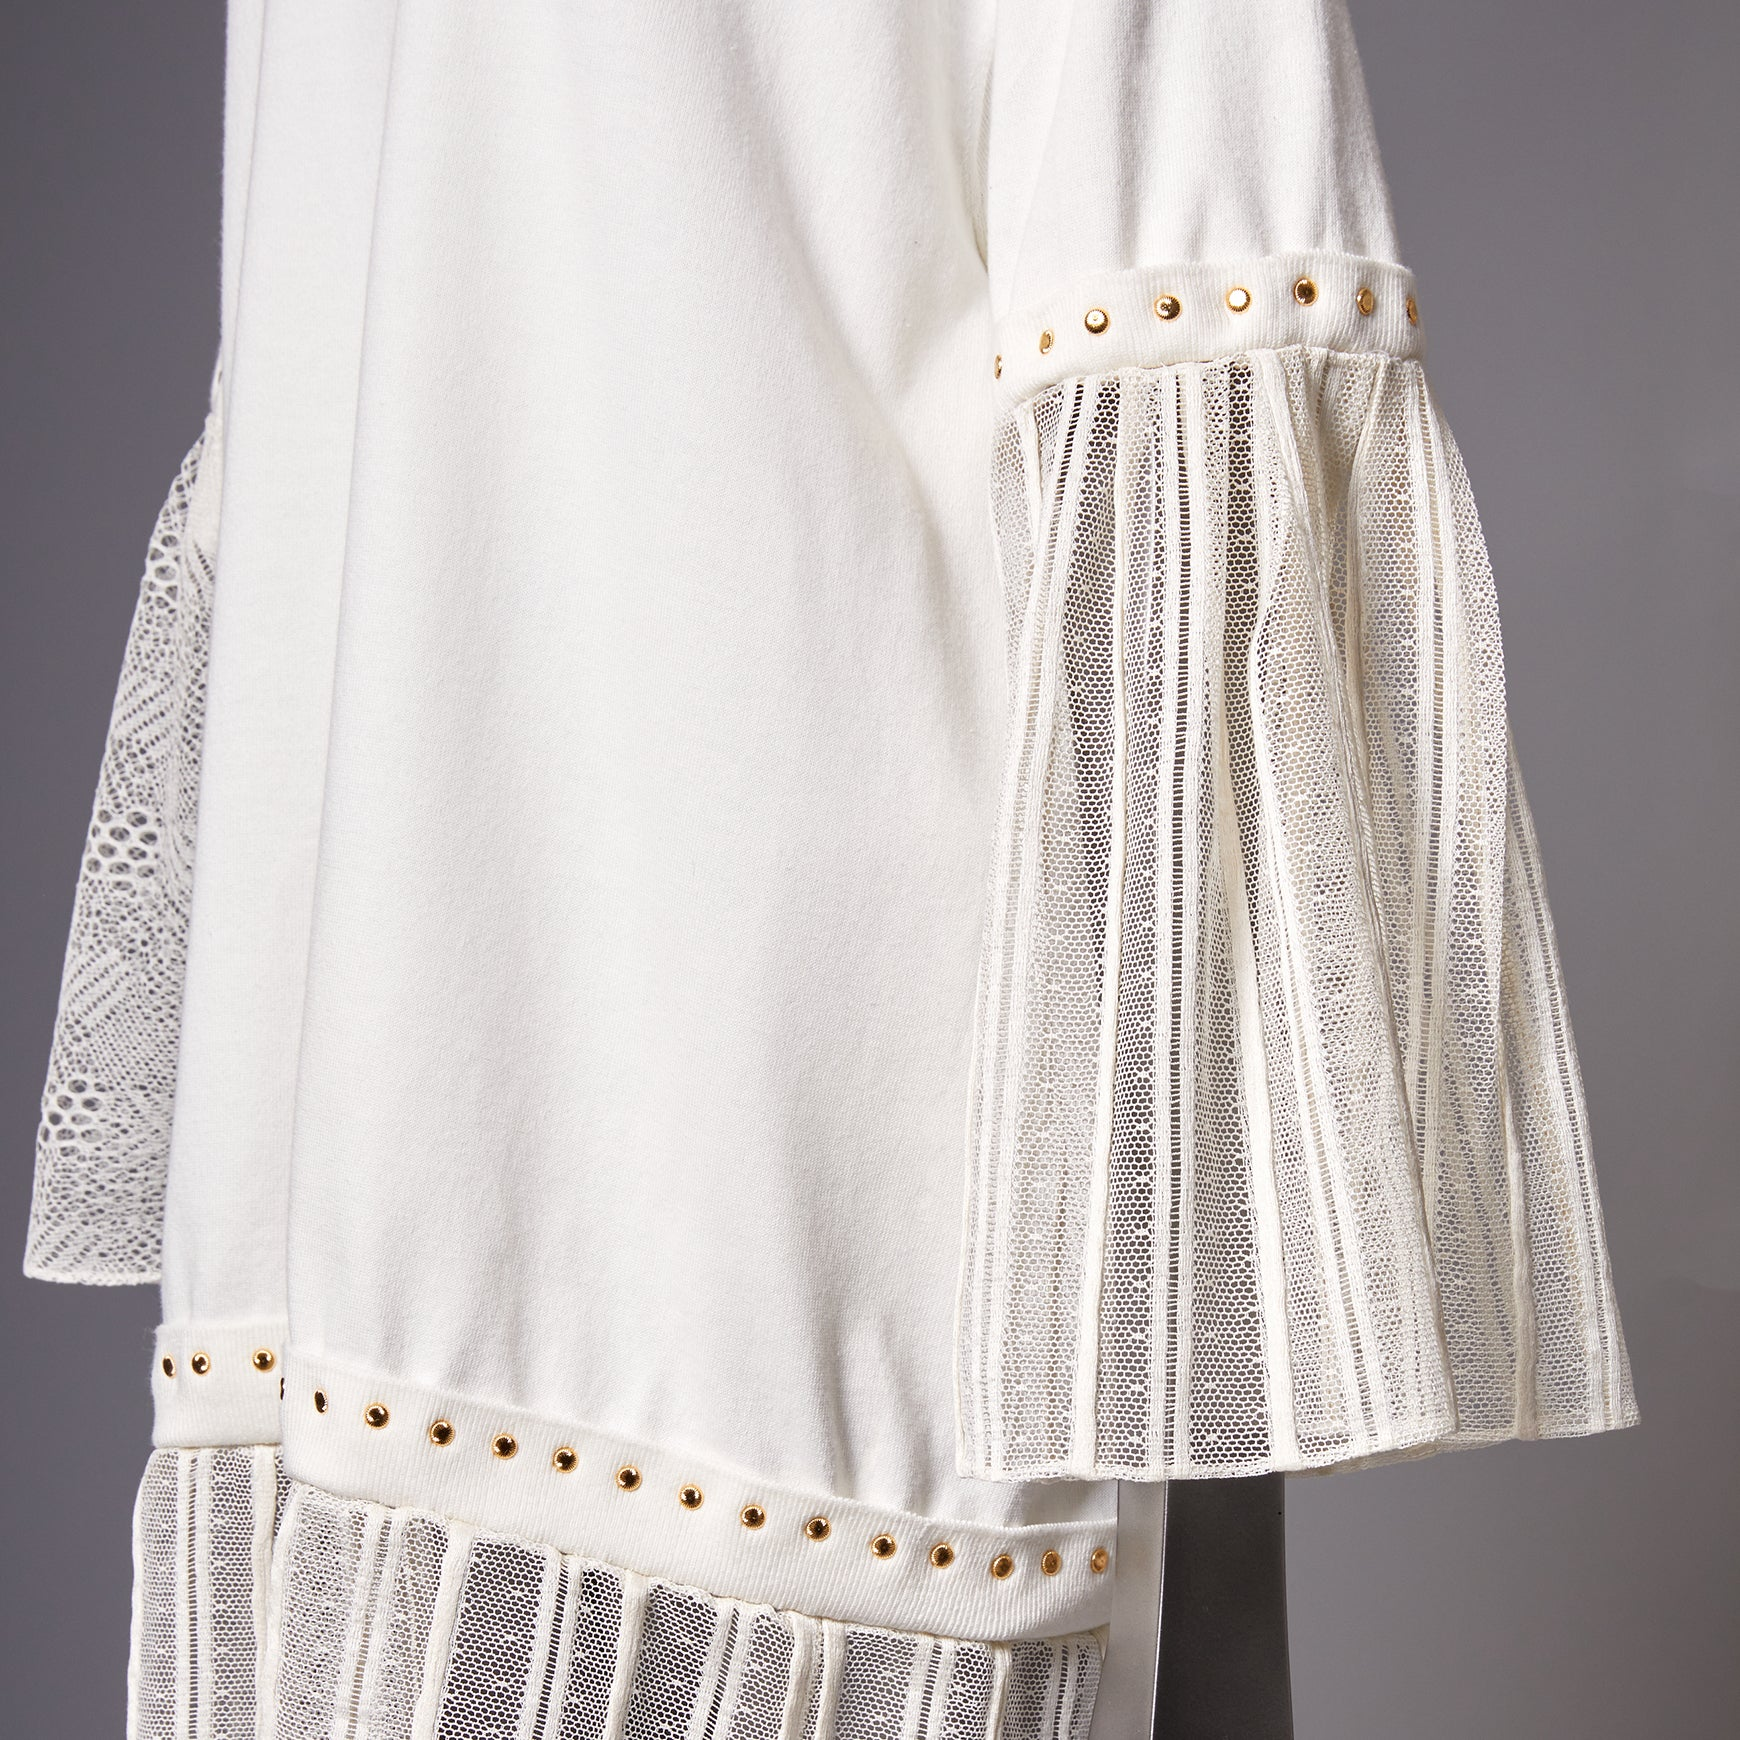 TYPE-1 Knit Half Sleeves French Lace Sleeve Parts Long (White Striped)